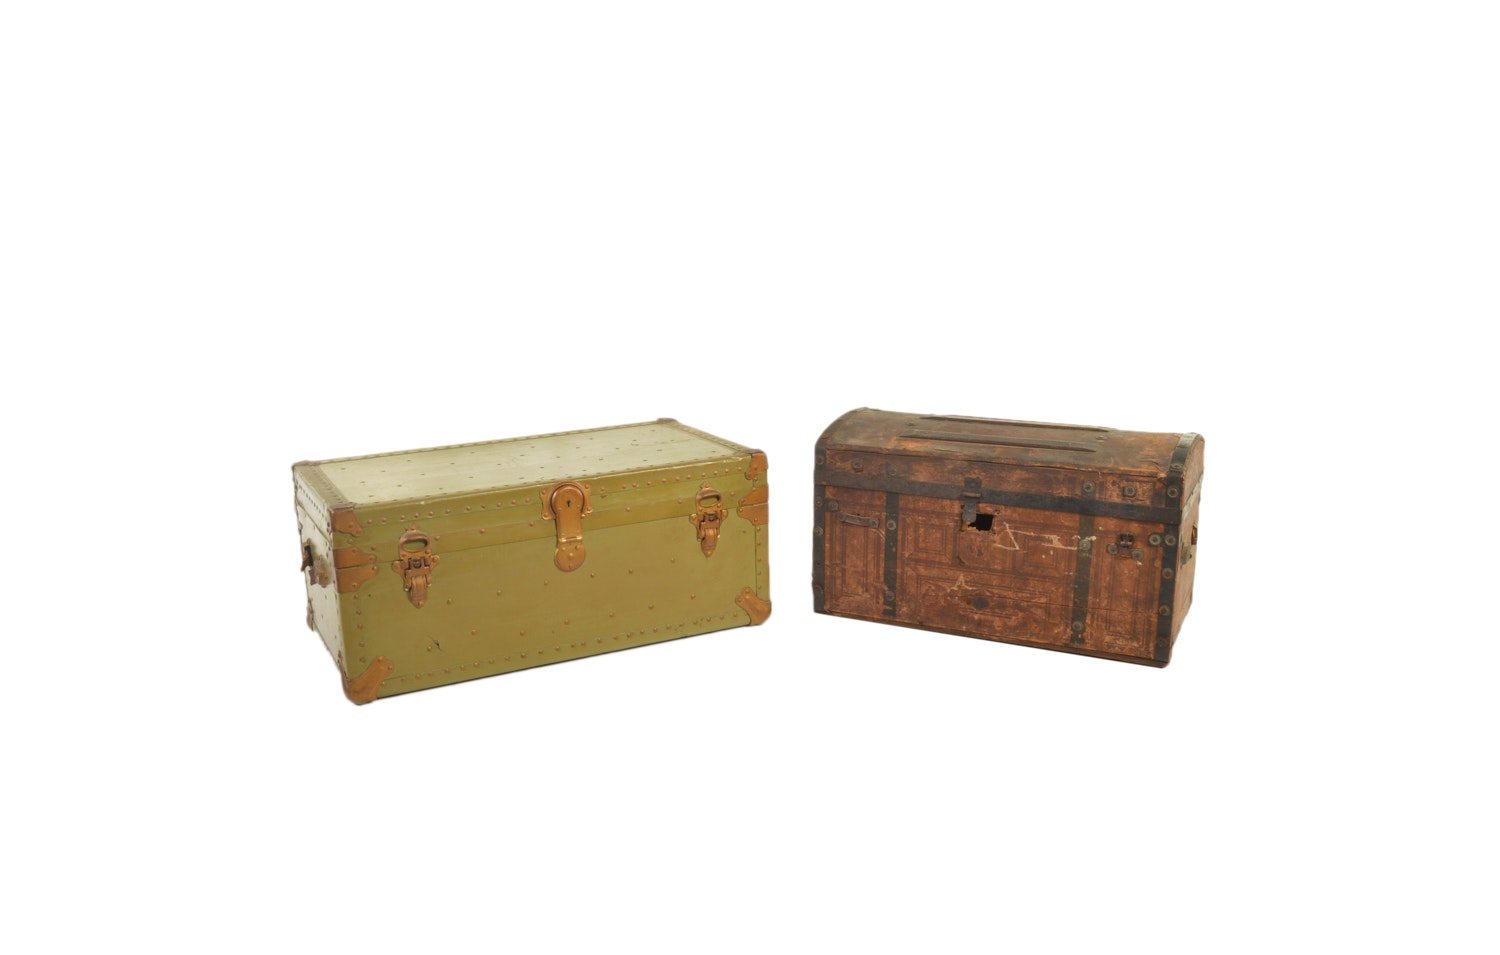 Vintage Army Trunk and Dome Top Trunk